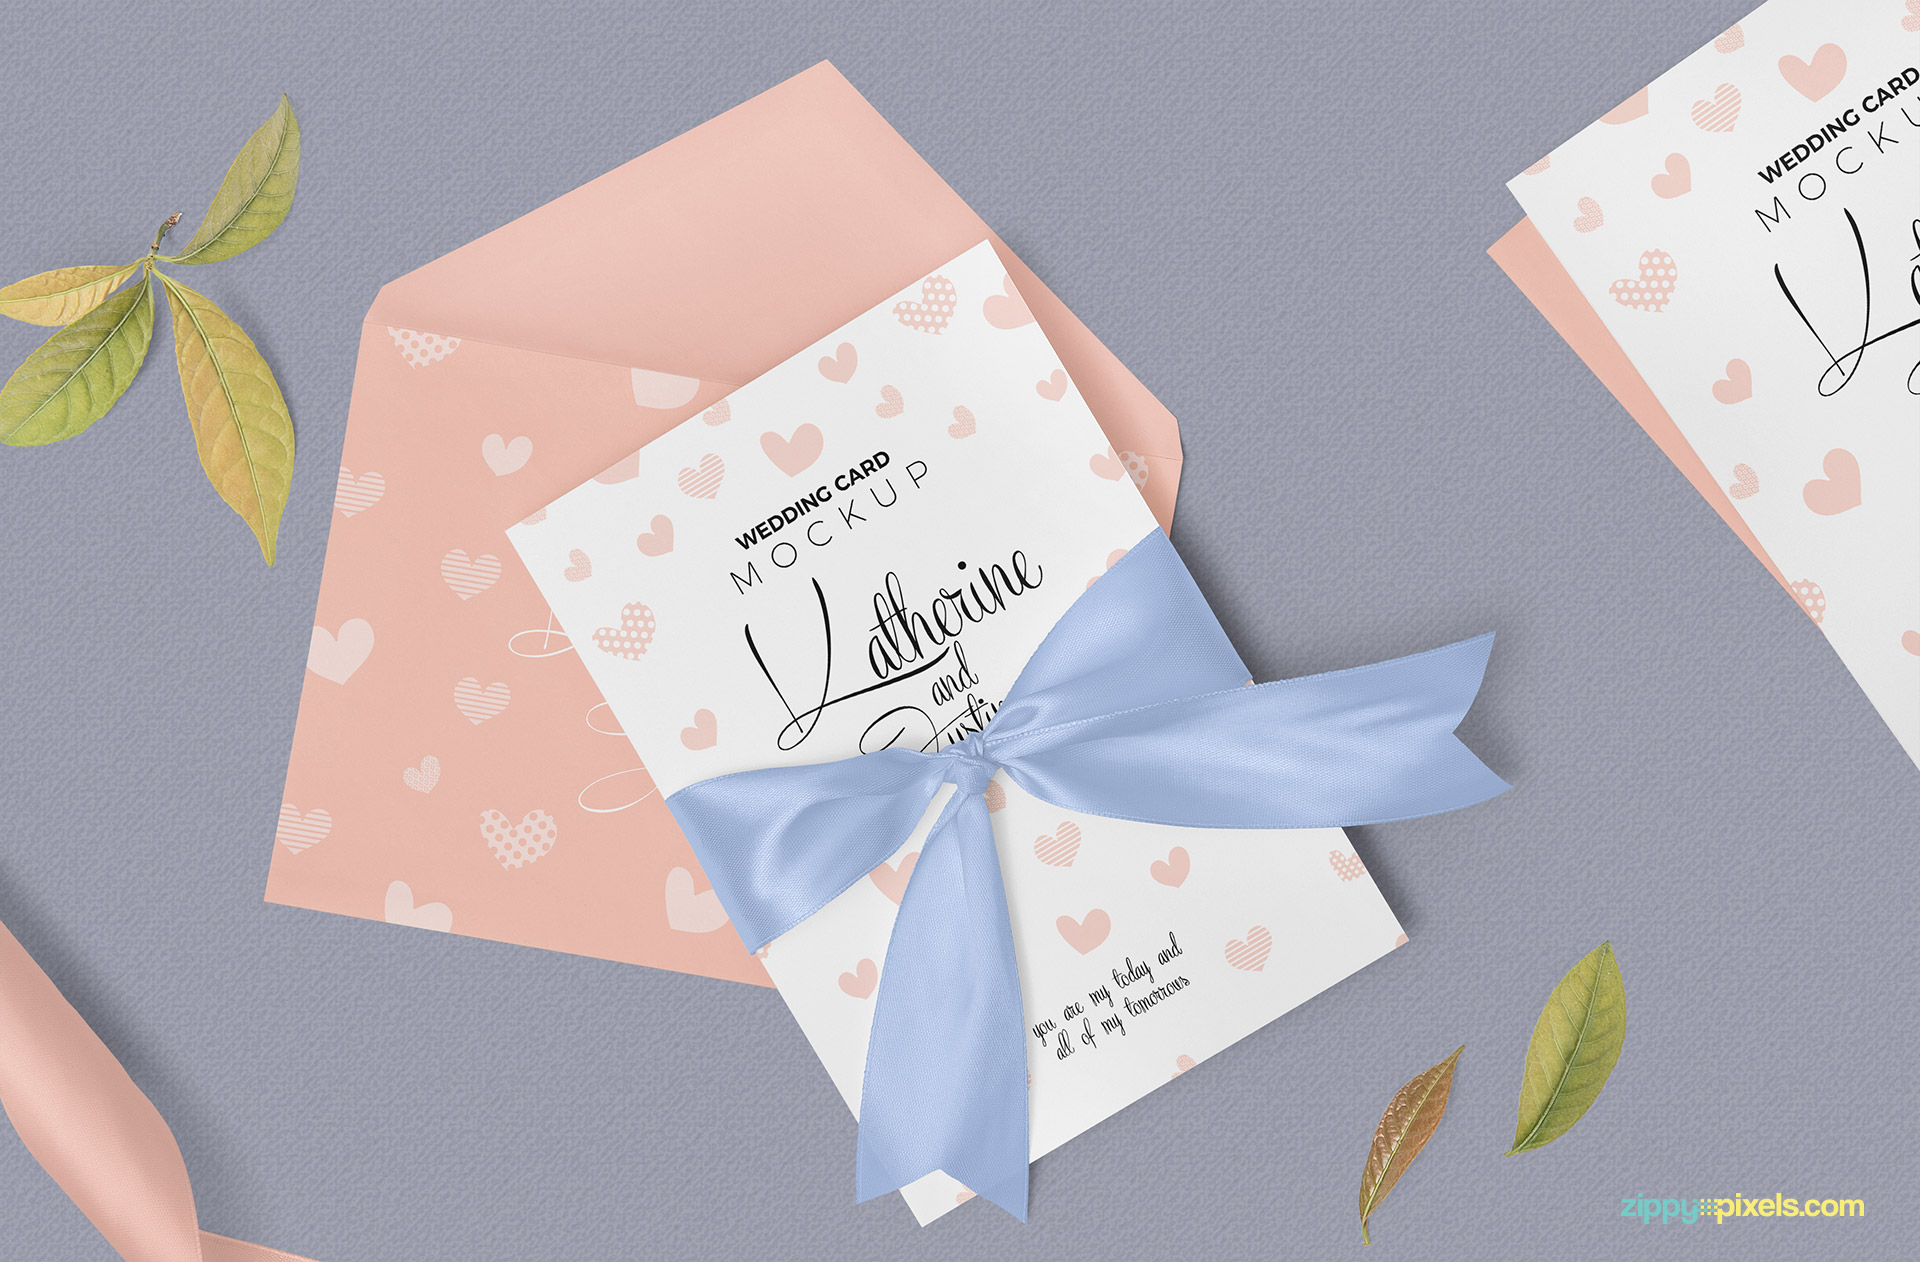 Fully customizable invitation card mockup.